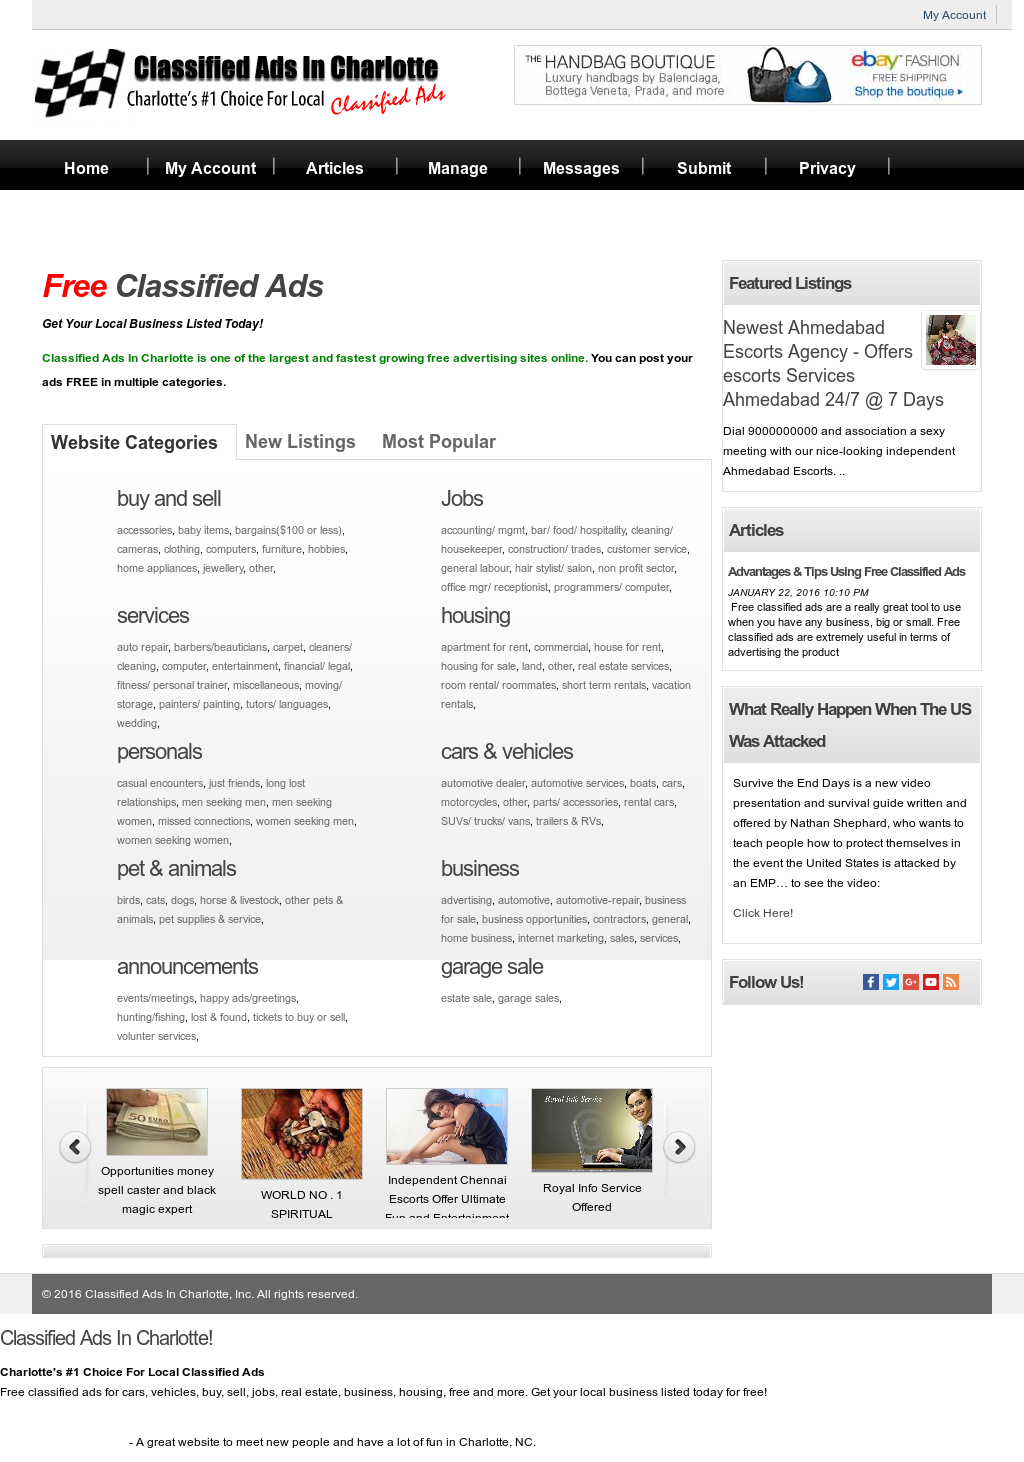 Classified Ads In Charlotte Competitors, Revenue and Employees